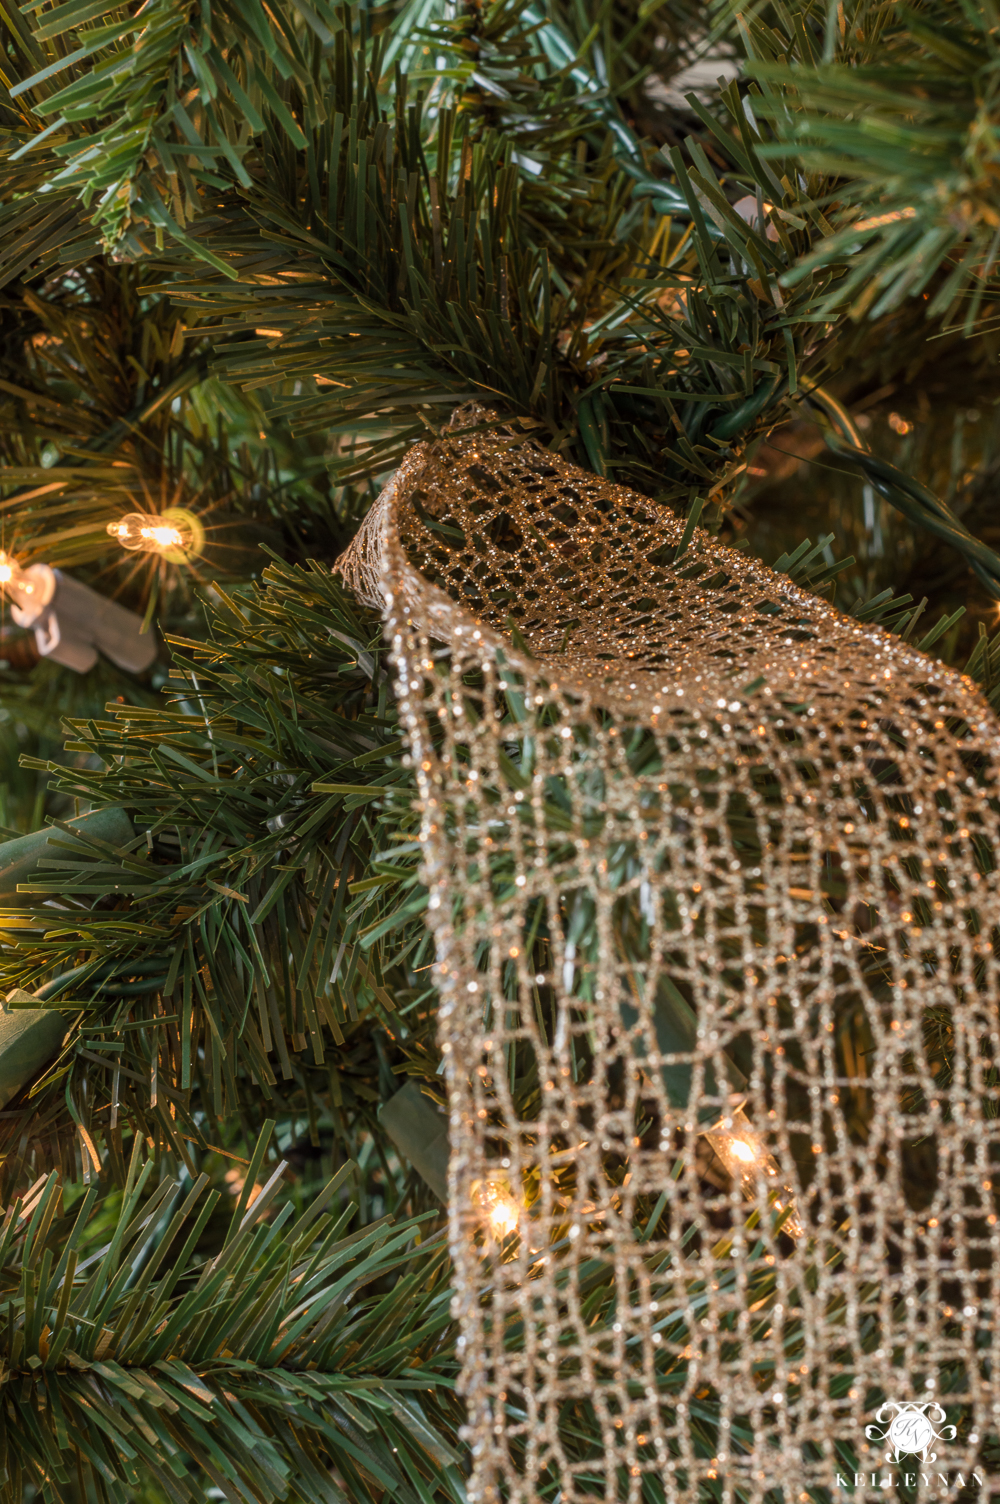 How To Decorate A Christmas Tree Professionally With Ribbon.How To Decorate A Christmas Tree With Ribbon Kelley Nan